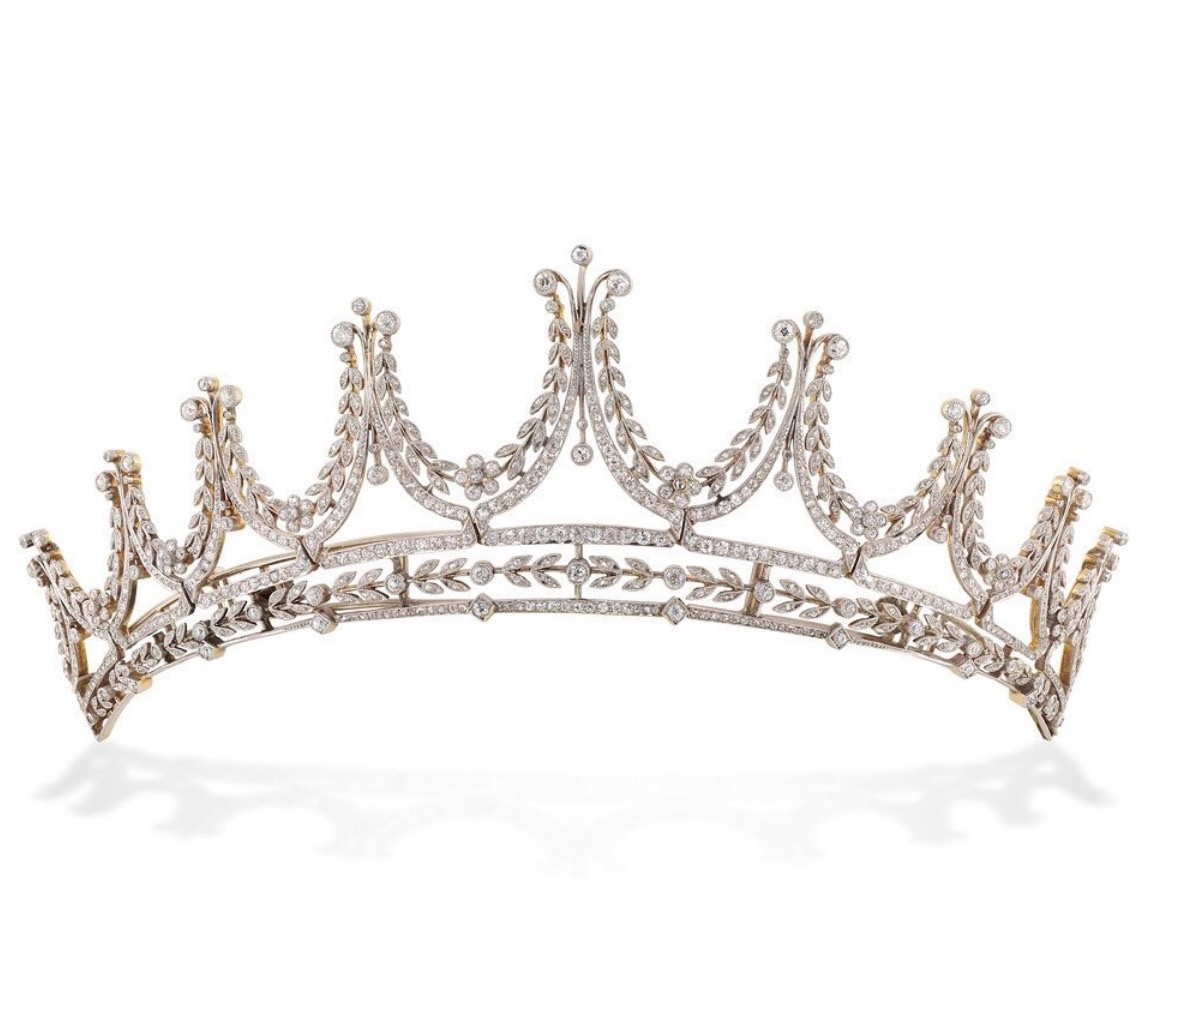 The Ewardian Tiara worn by Cora Crowley in 'Downton Abbey' from Bentley & Skinner. Photo via Instagram @bentley_skinner